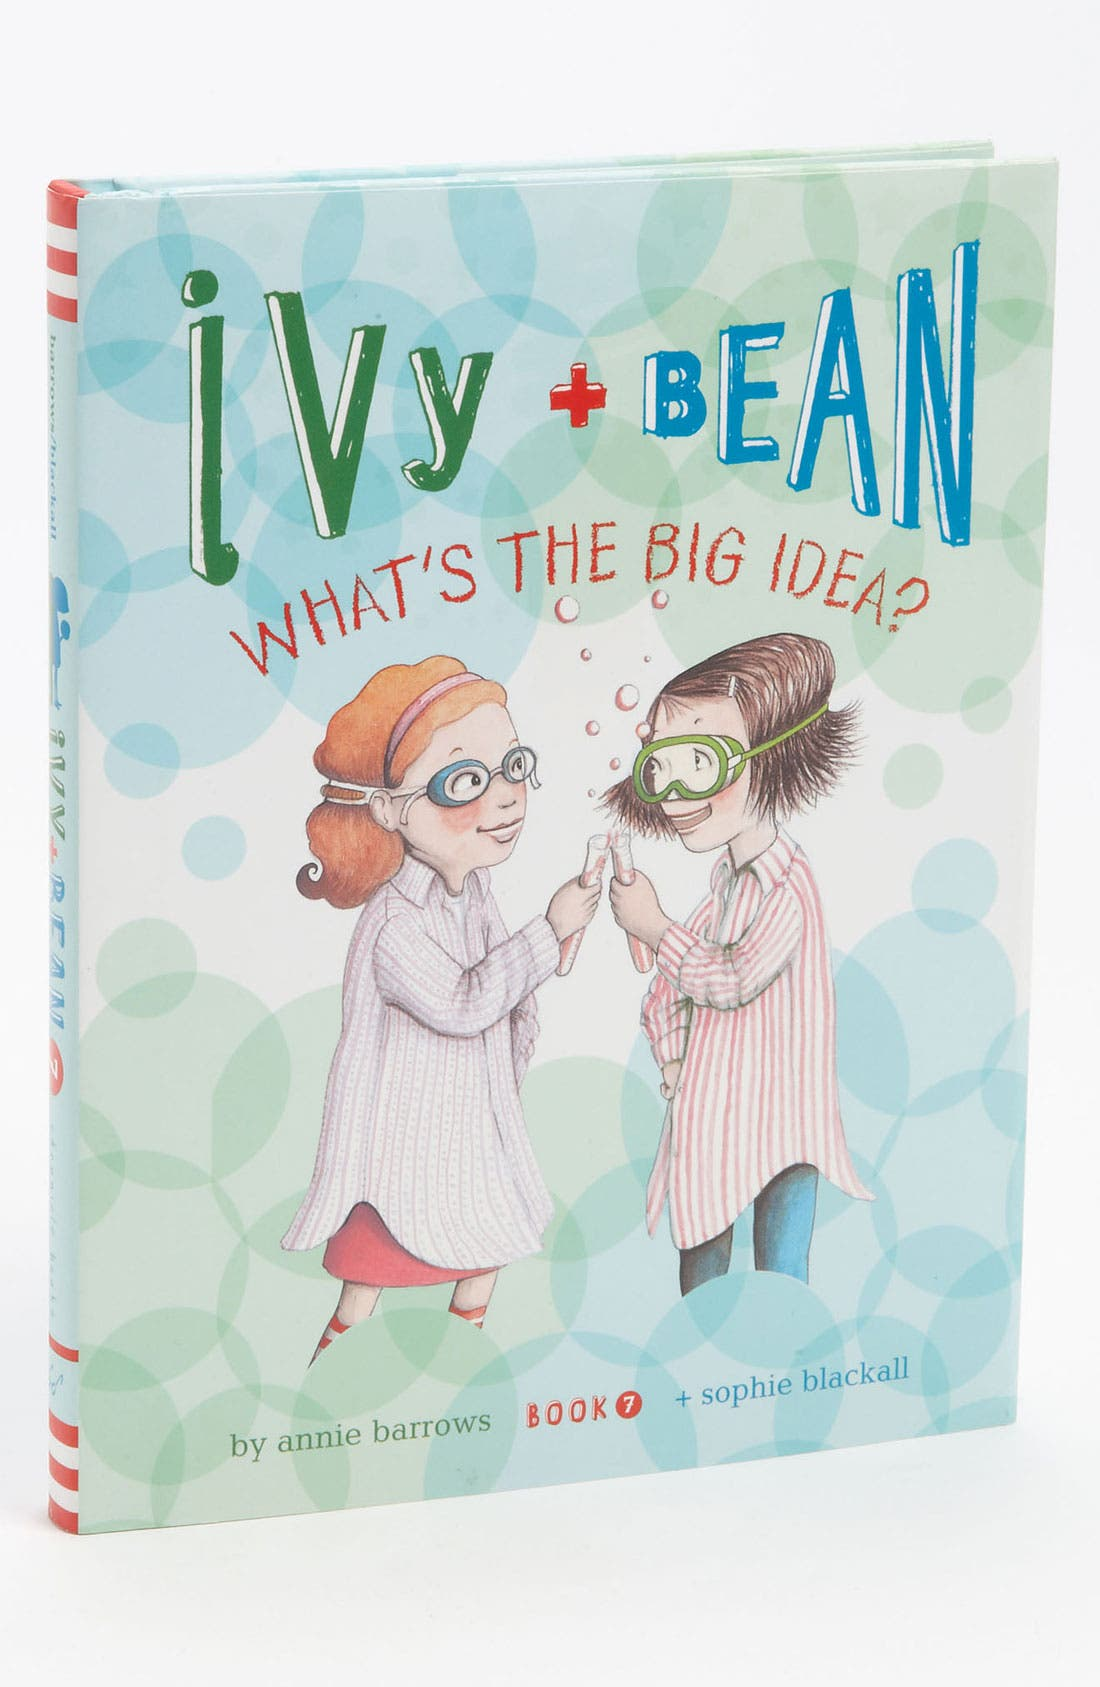 Main Image - Annie Barrows & Sophie Blackall 'Ivy + Bean: What's The Big Idea' Book